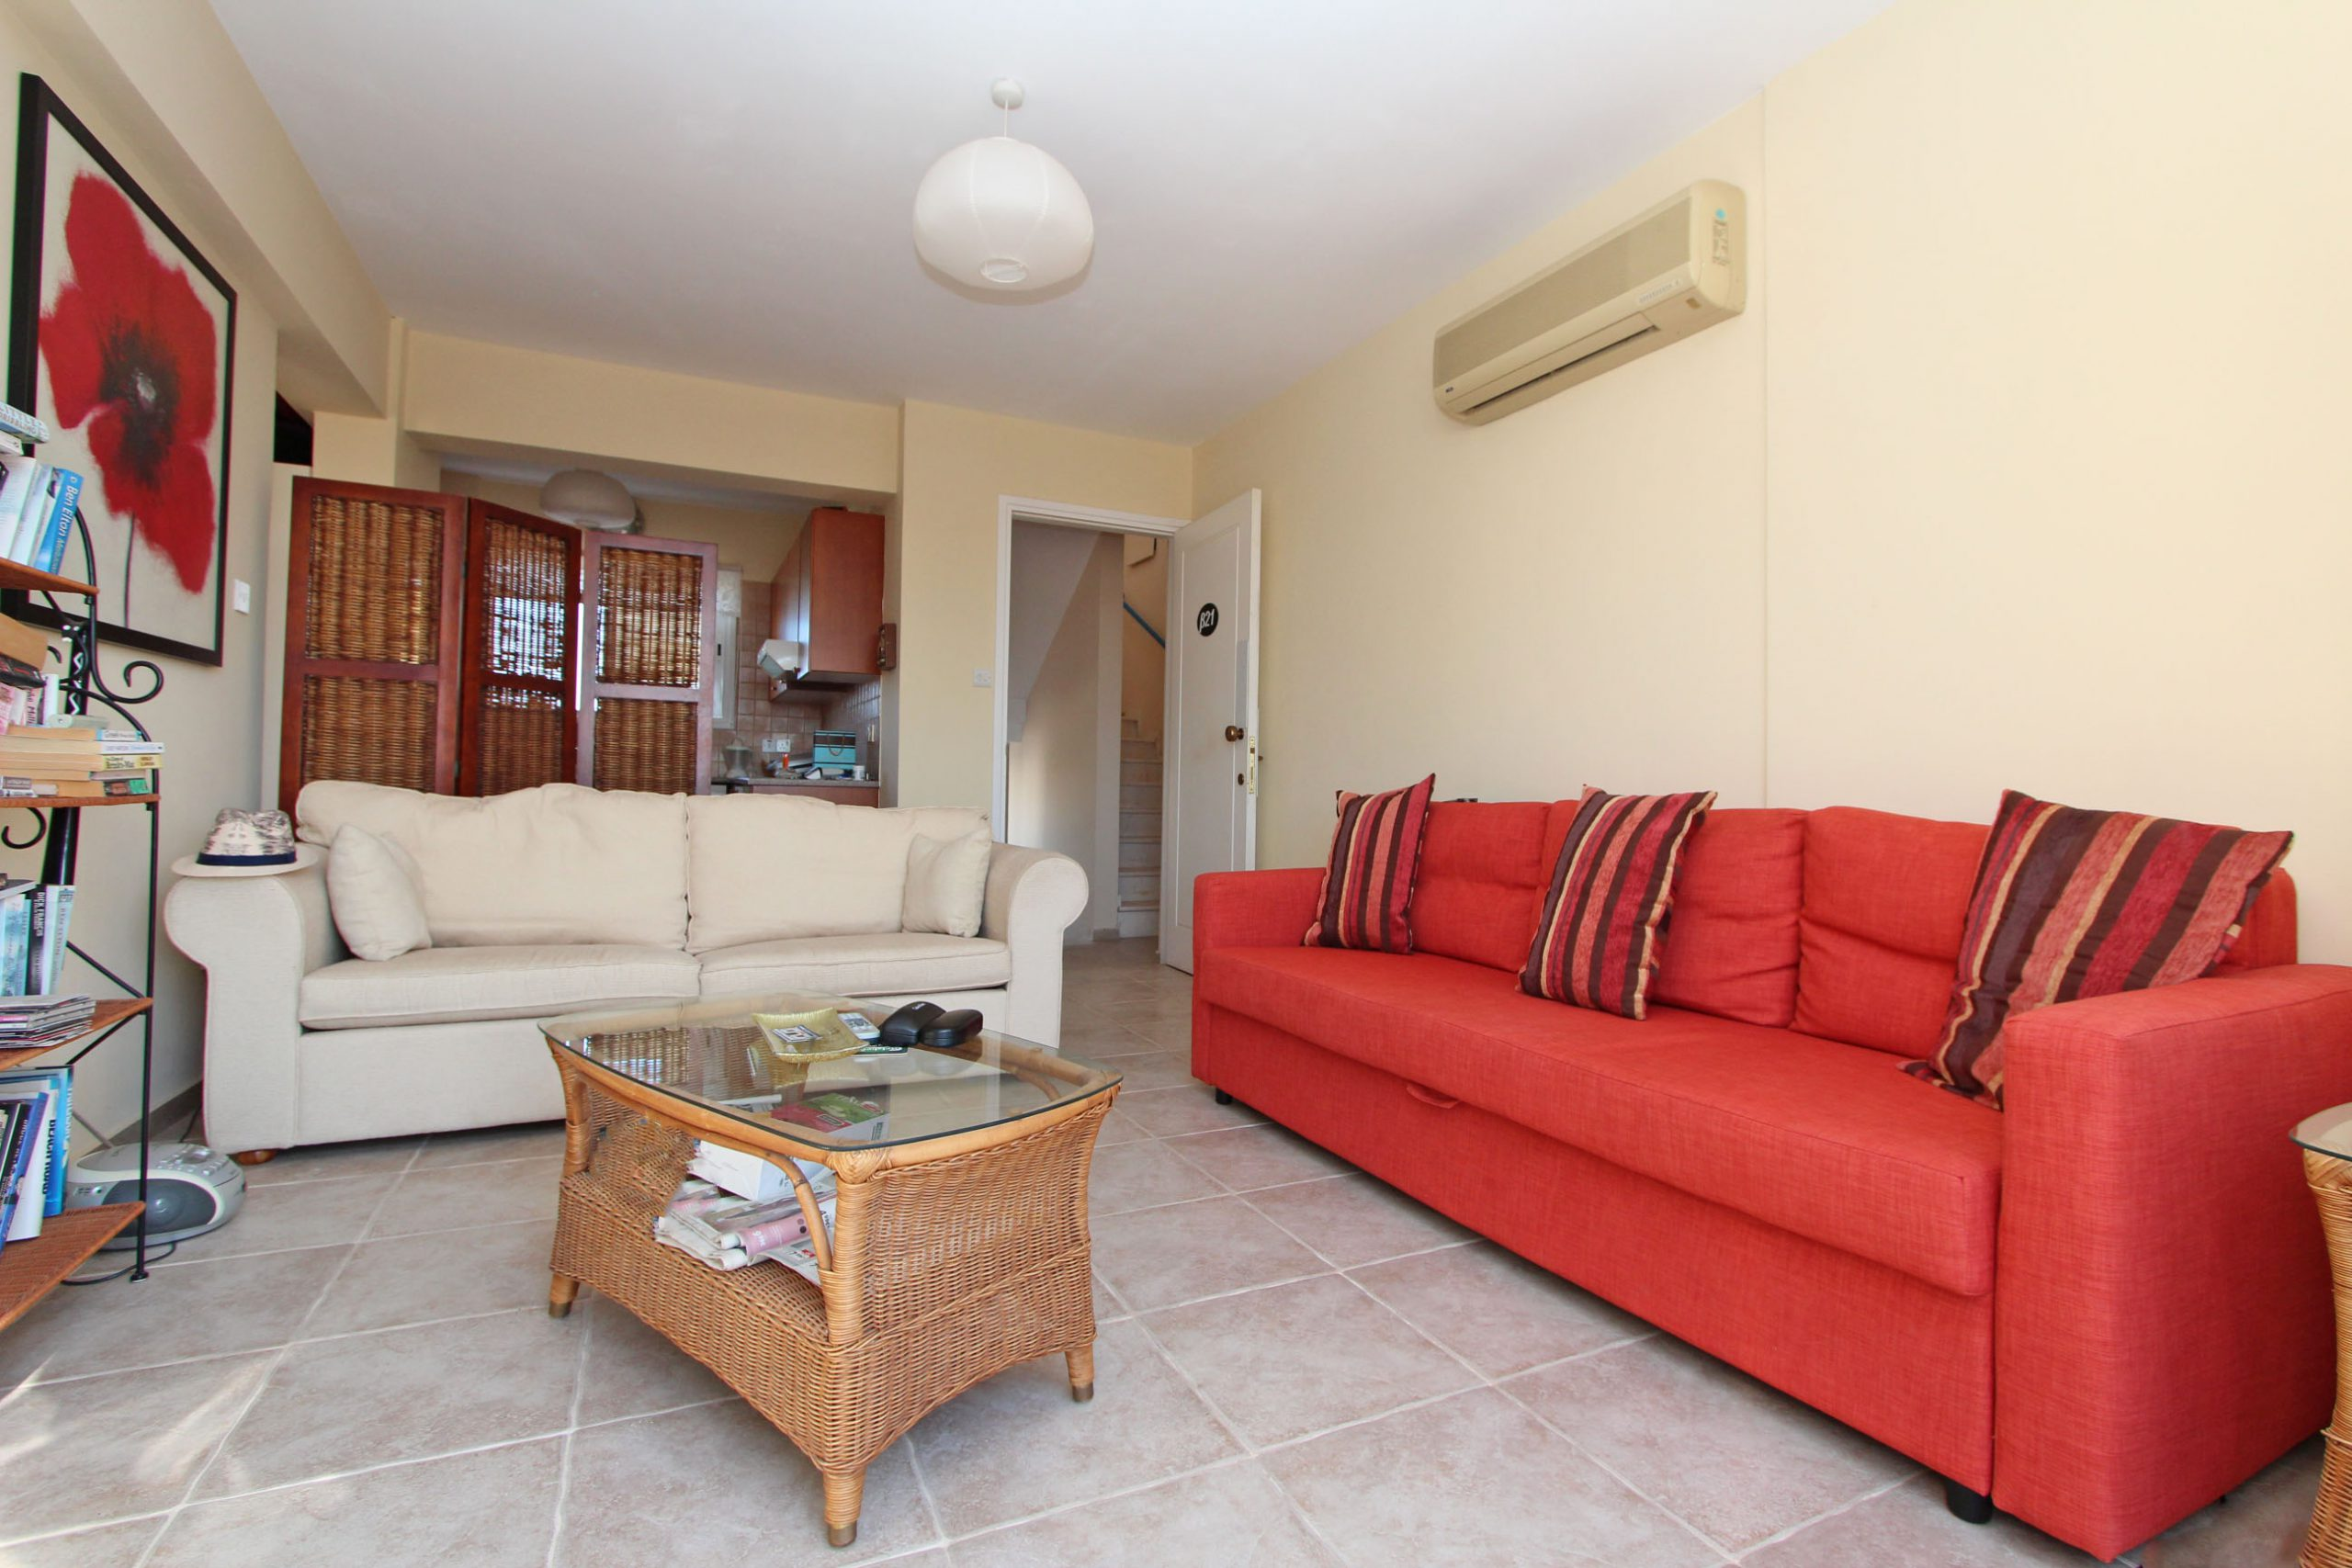 REF:  CCB21 One Bed Nicely Furnished Penthouse E400.00 pcm with Large Balcony